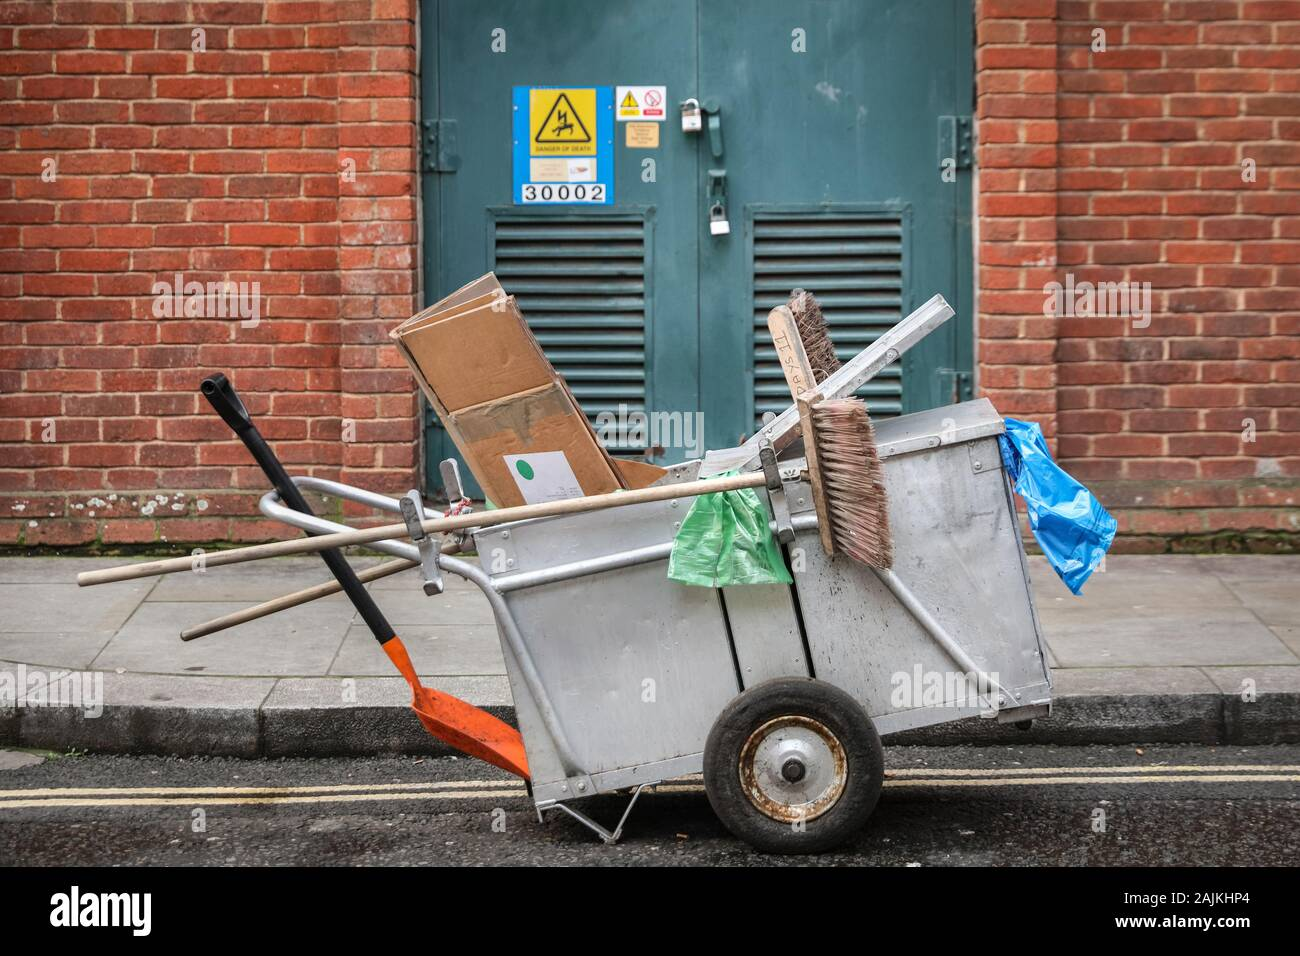 Dust card, council street cleaning trolley cart with brushes, exterior in Central London, UK Stock Photo